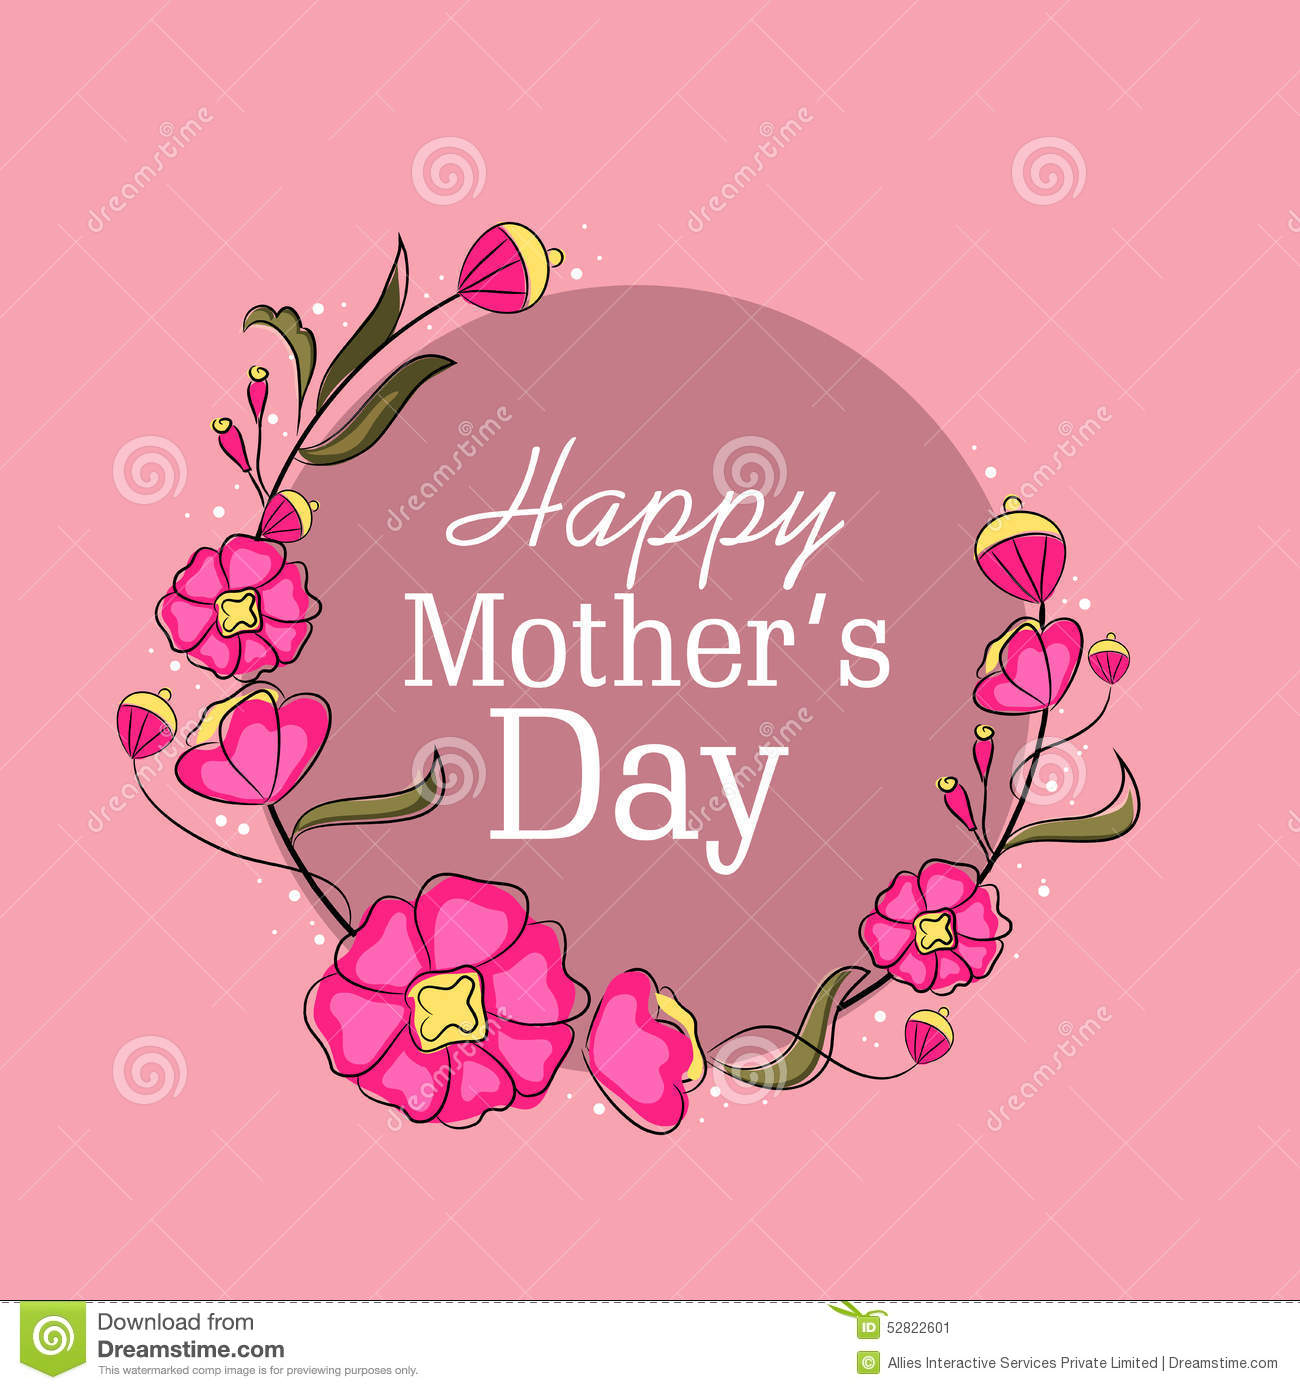 Greeting Card Design For Happy Mothers Day Celebration Stock